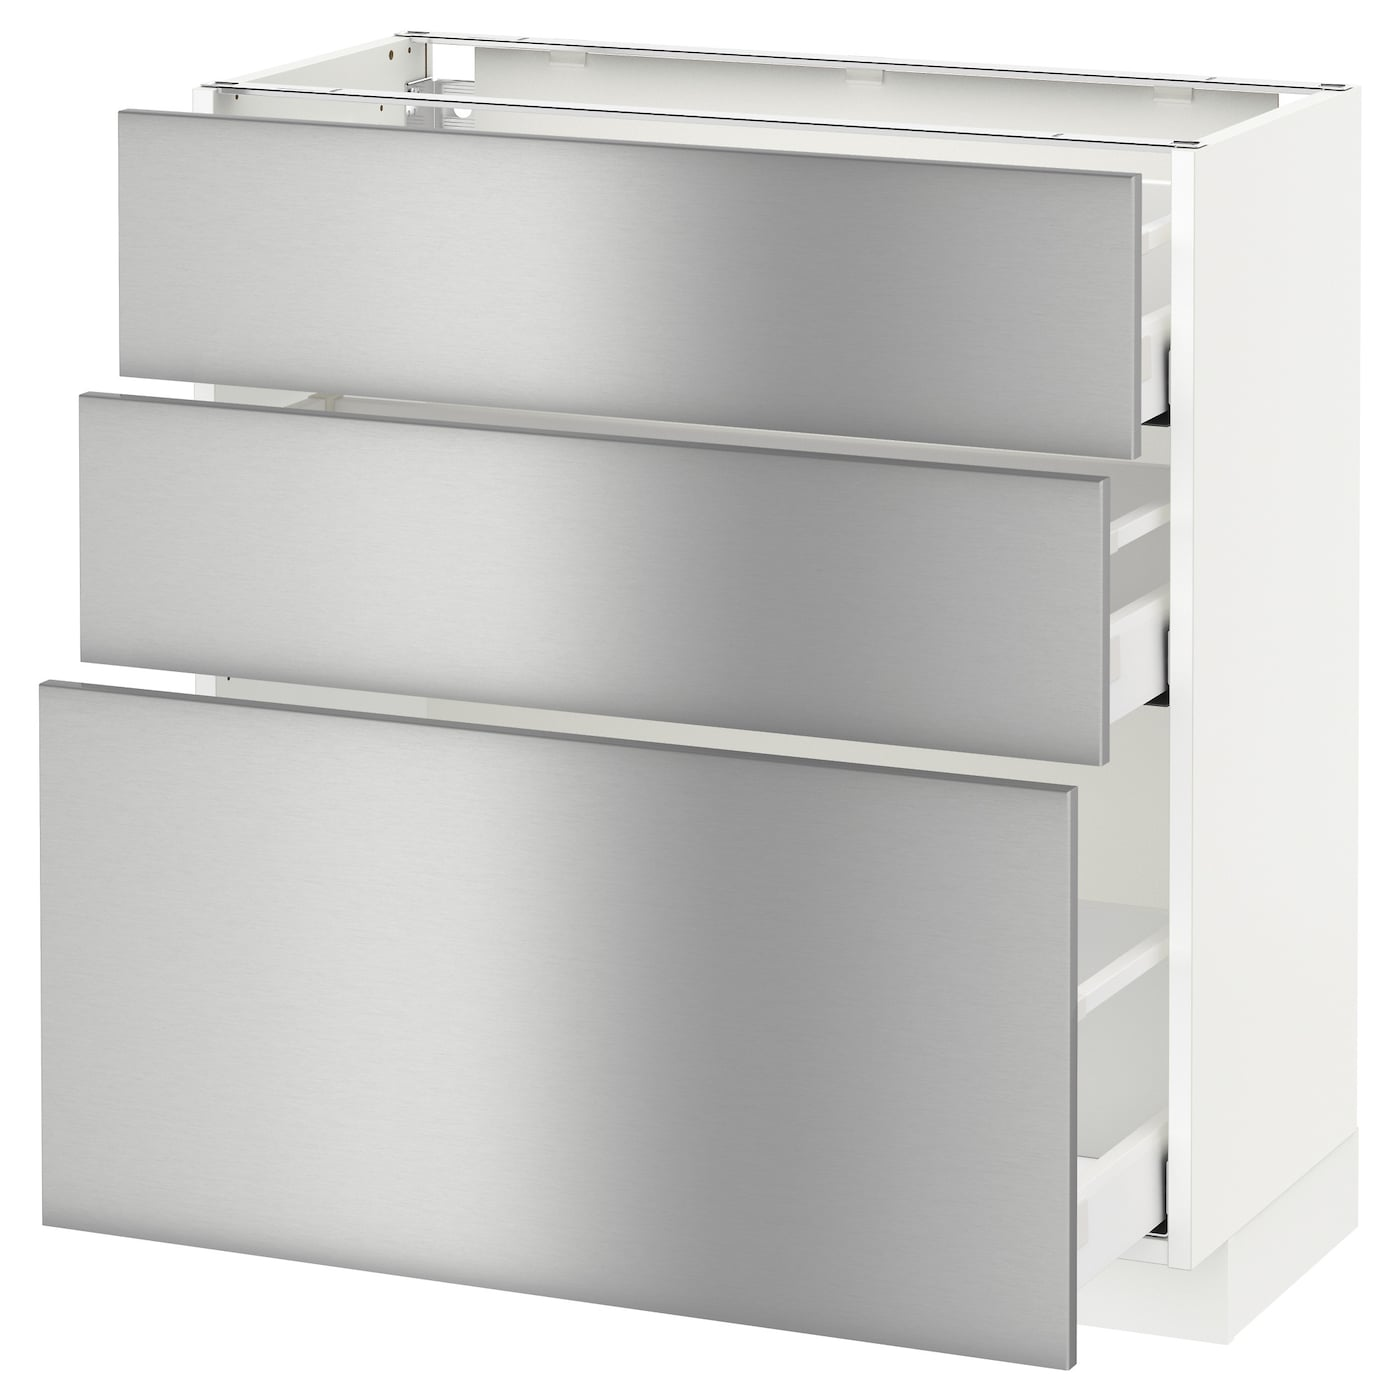 Metod maximera base cabinet with 3 drawers white grevsta for Stainless steel kitchen cabinet price